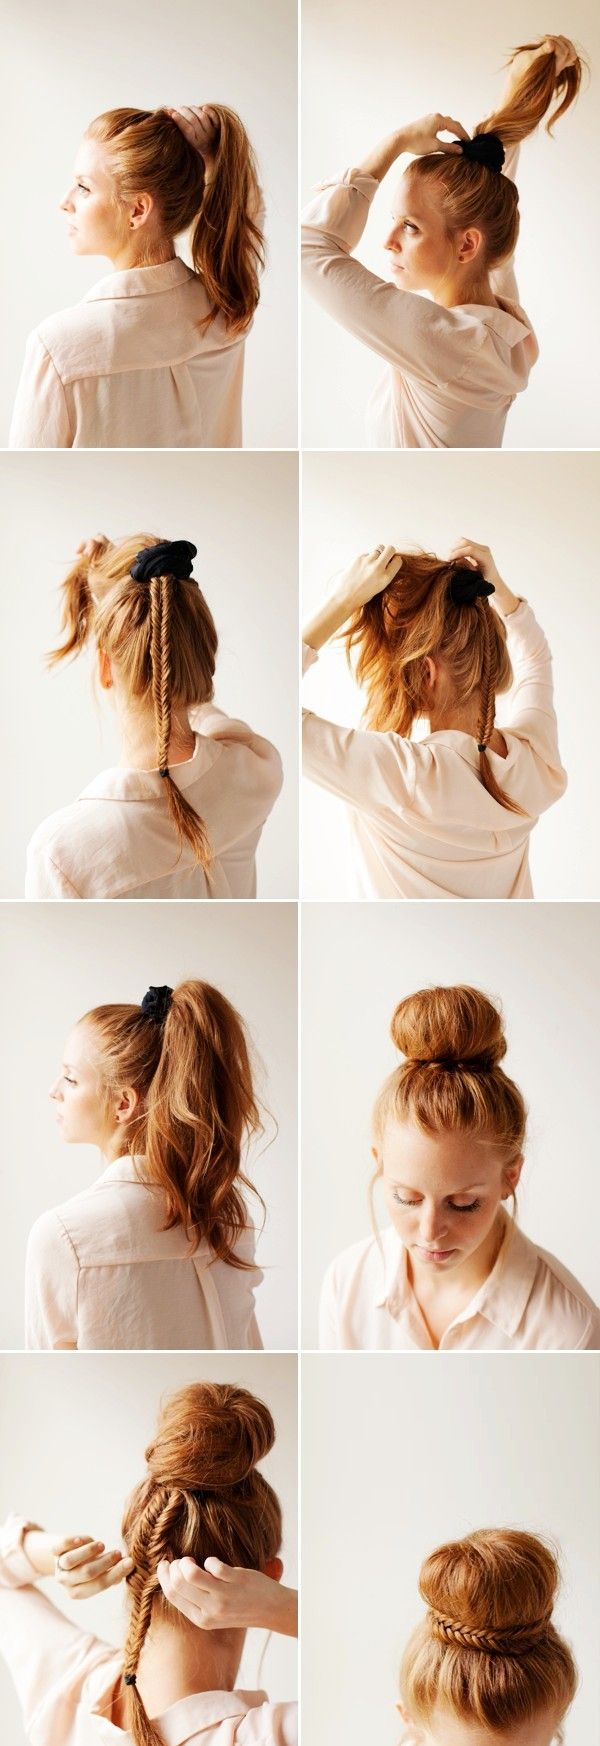 WEDDING DAY HAIR: ELEGANT FISHTAIL BUN HOW TO